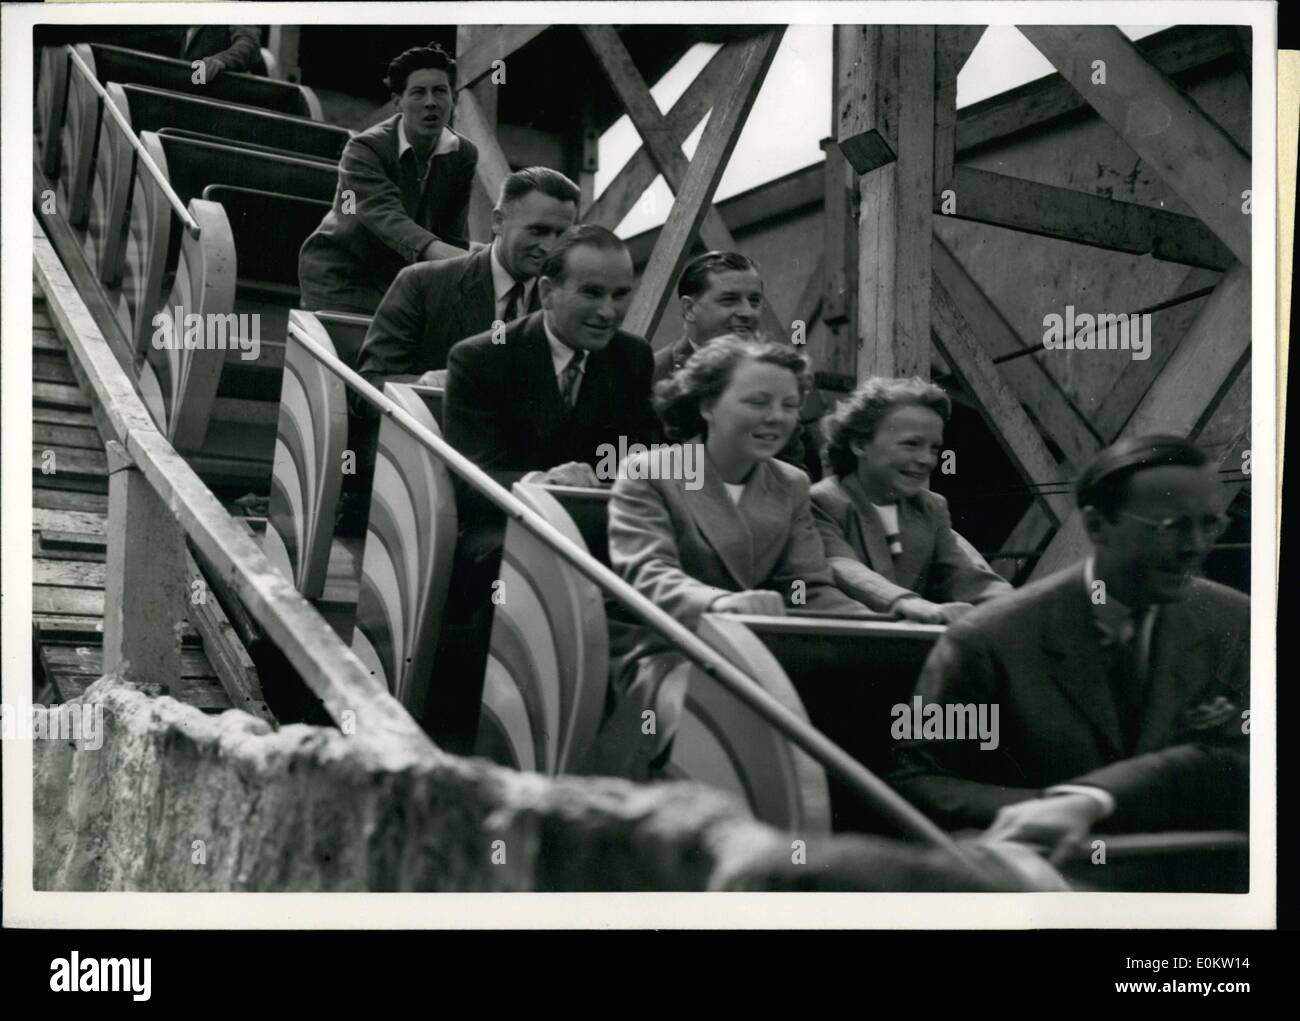 Jul. 07, 1951 - Princess Go To The Fair: Two princesses grit their teeth, smile-slightly- and hang on right as they swoop down the first steep slope of the Festival Fun Fair Big Dipper. Sitting in front of them is their father, Prince Bernhard of the Netherlands, who took the Princess, Beatrix, 13, and Irene, 11, to the Fair yesterday. It was their first visit to an amusement park and they made the most of it.They started with a 2 1/2-miinute trip on the Moon Rocket. ''Don't go too far, or too-fast, Prince Bernhard warned them as they entered the car - Stock Image